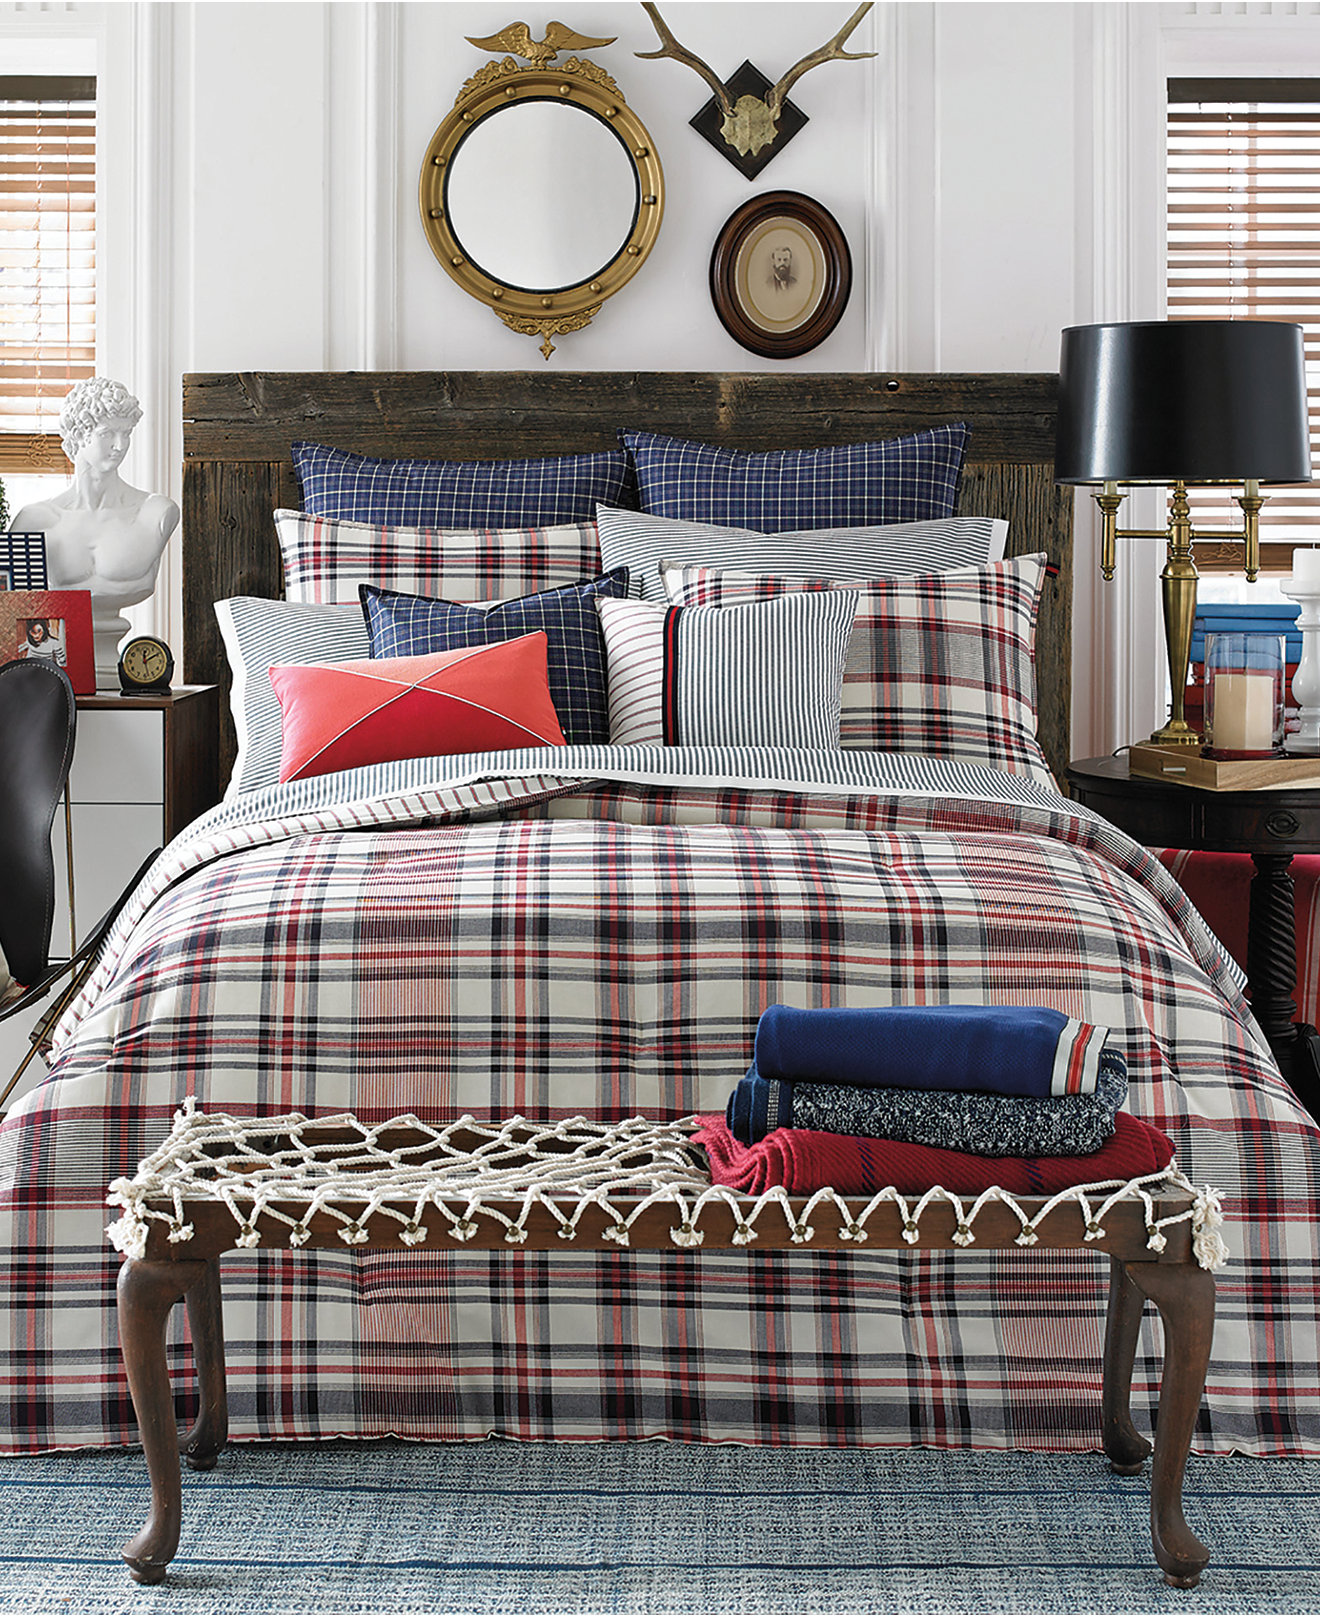 Captivating plaid comforter with rugs and wooden floor plus headboard and sidetable also pillows